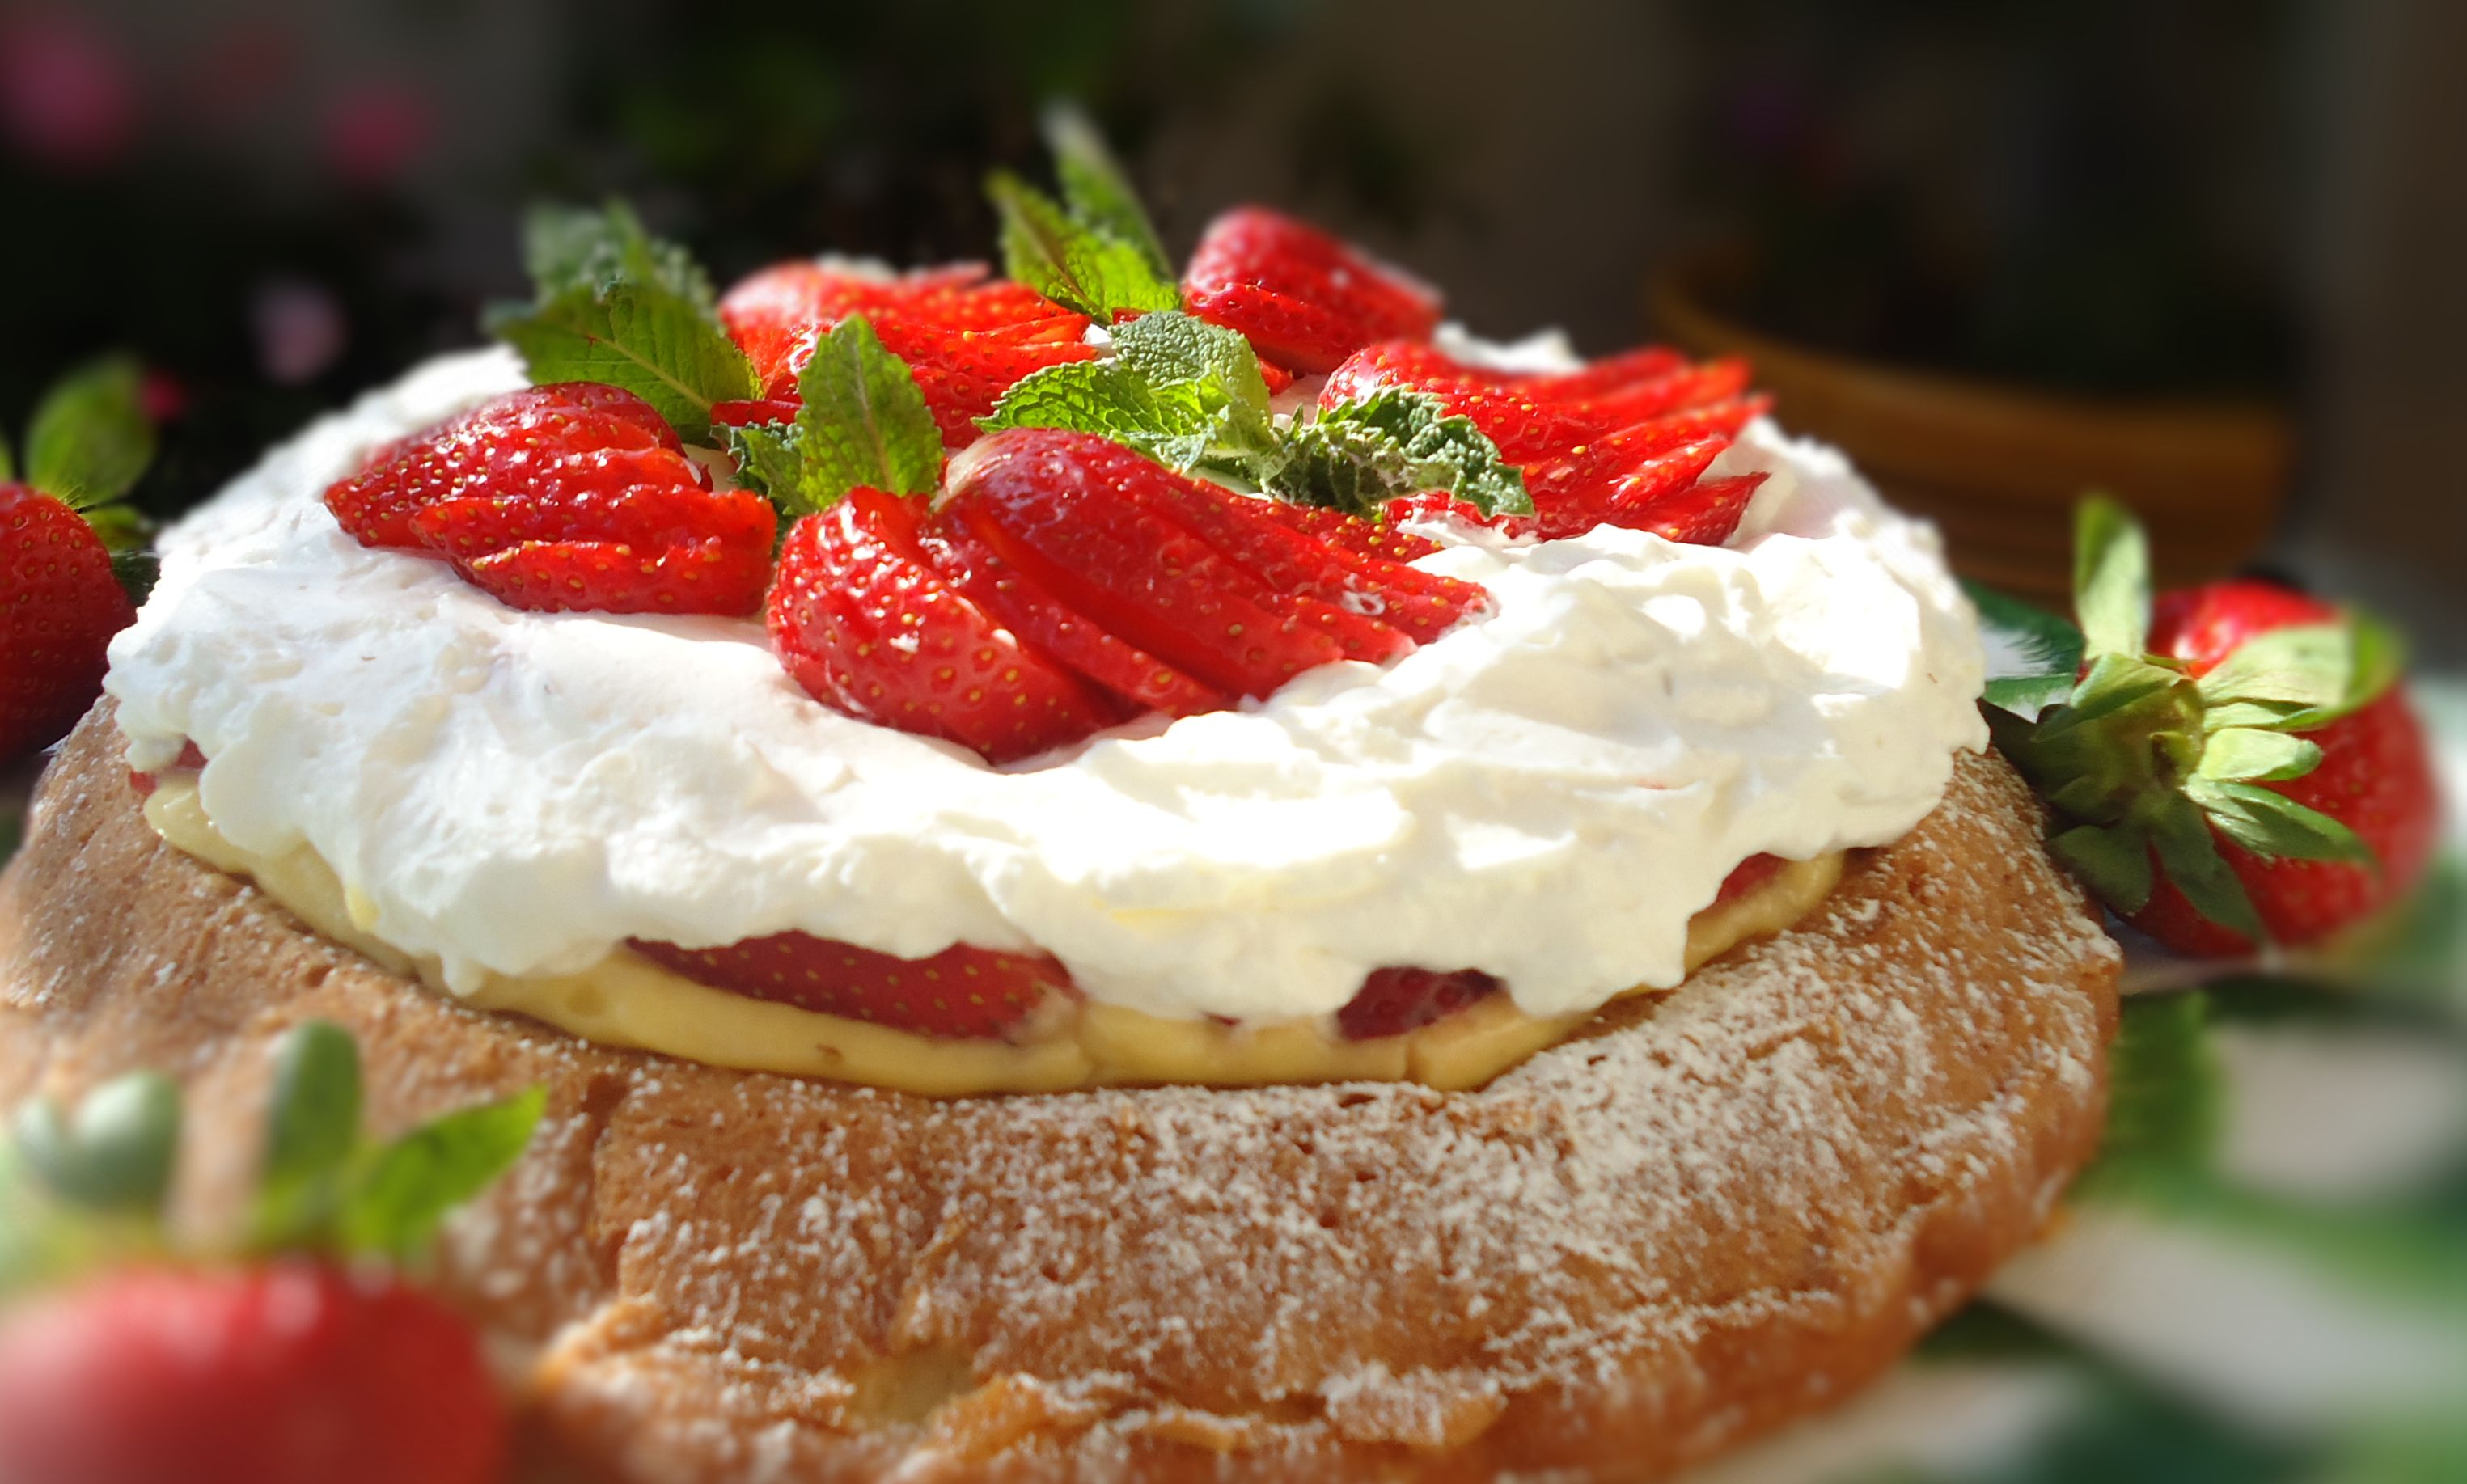 ... , and Food News | Strawberry Custard Mary Ann Cake with Whipped Cream